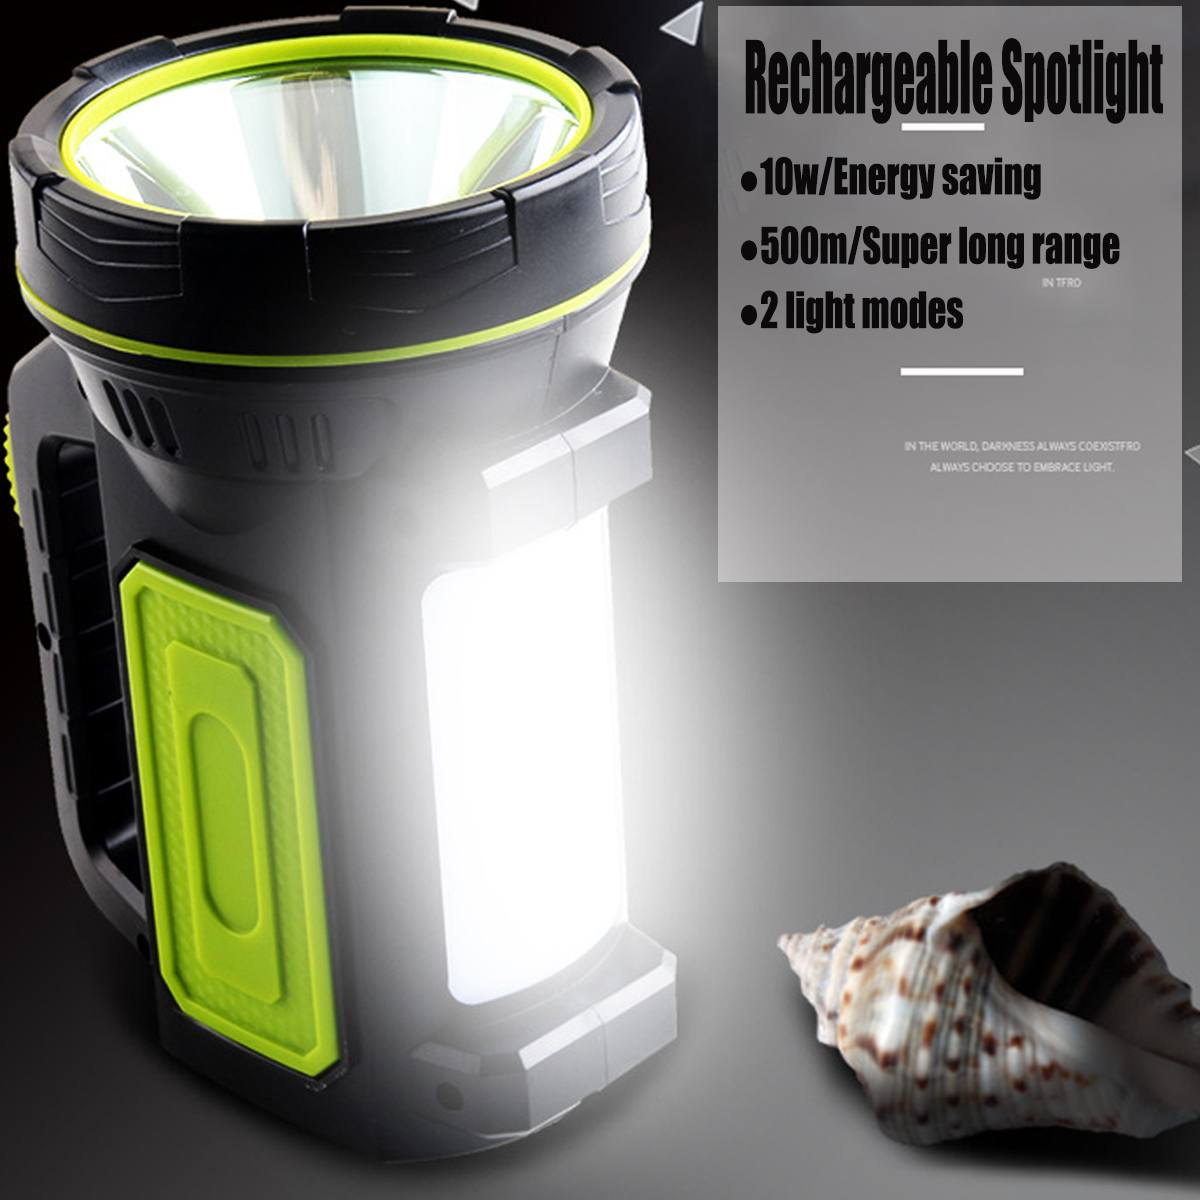 Outdoor Powerful Led Flashlight Rechargeable 10W EU/U.S. Regulations Portable Spot Flashlight Waterproof Handy Hand Flashlight